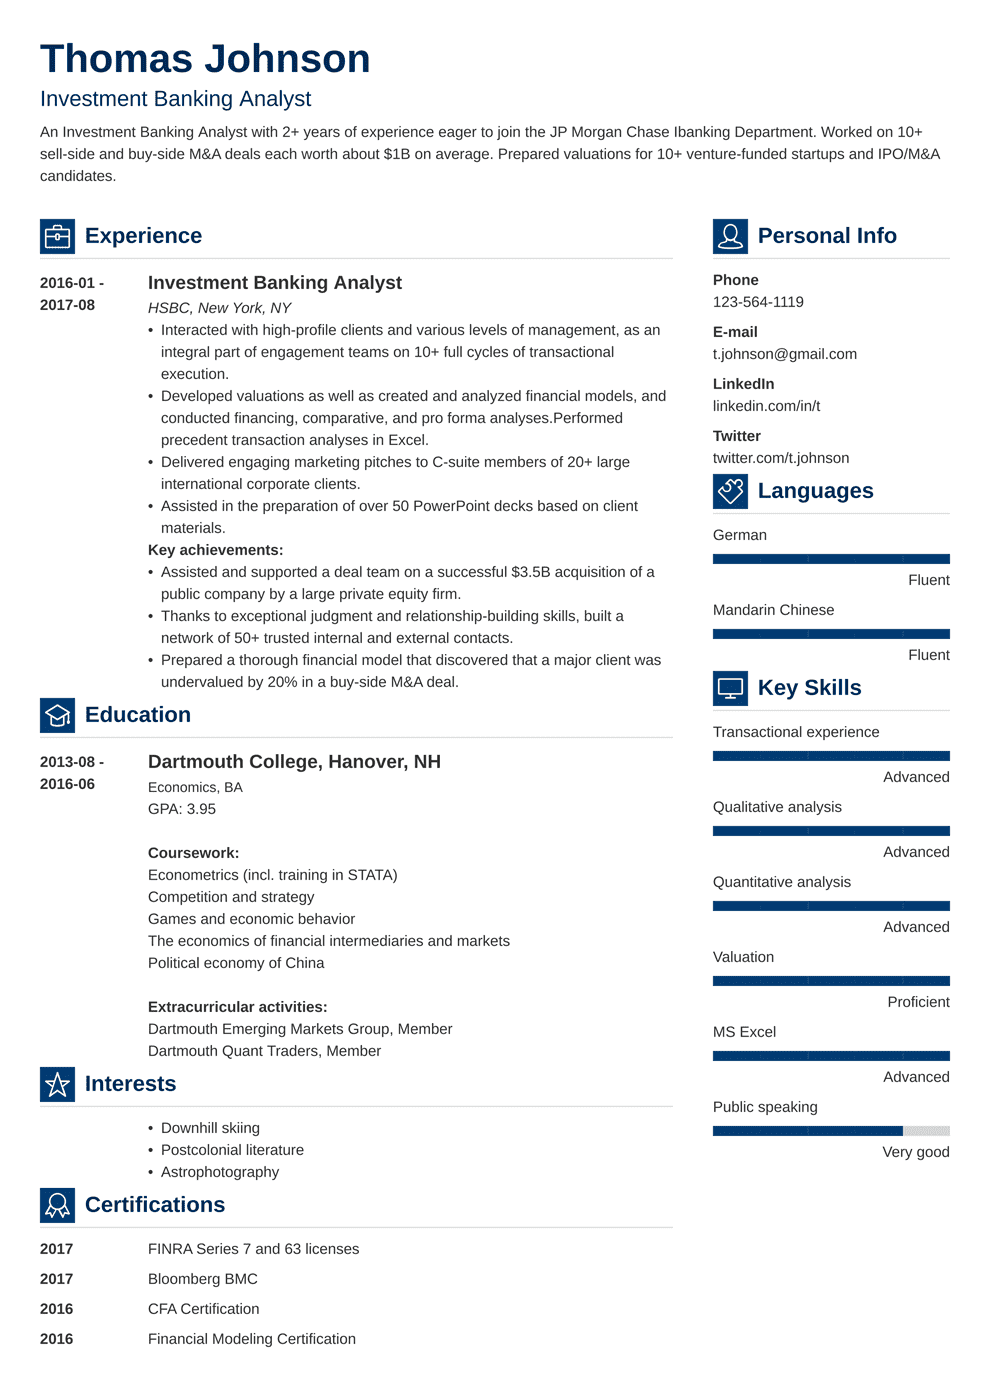 Investment Banking Resume: Sample and Writing Guide [20+ Examples]